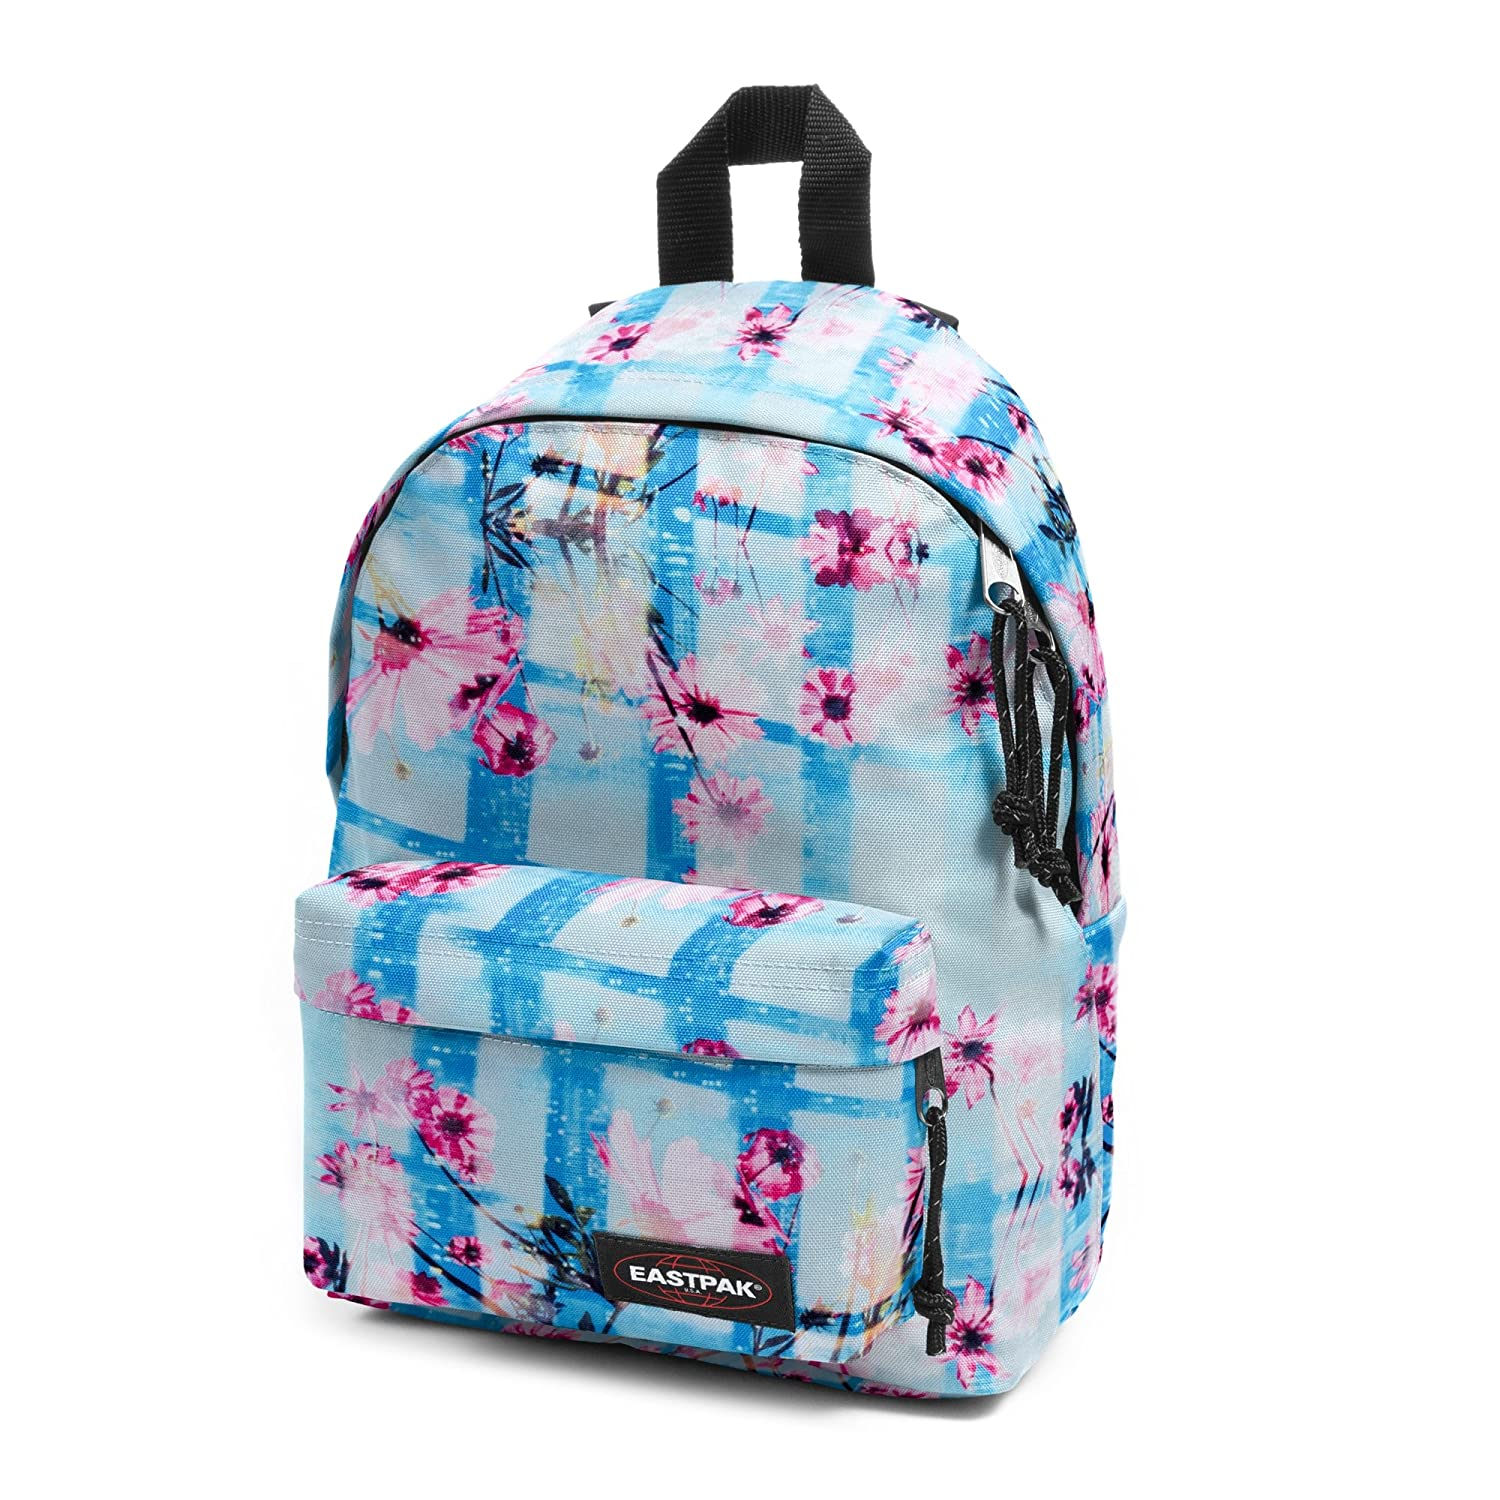 Eastpak Daypack Orbit - Mochila, color been there done that blue - Talla única: Amazon.es: Equipaje